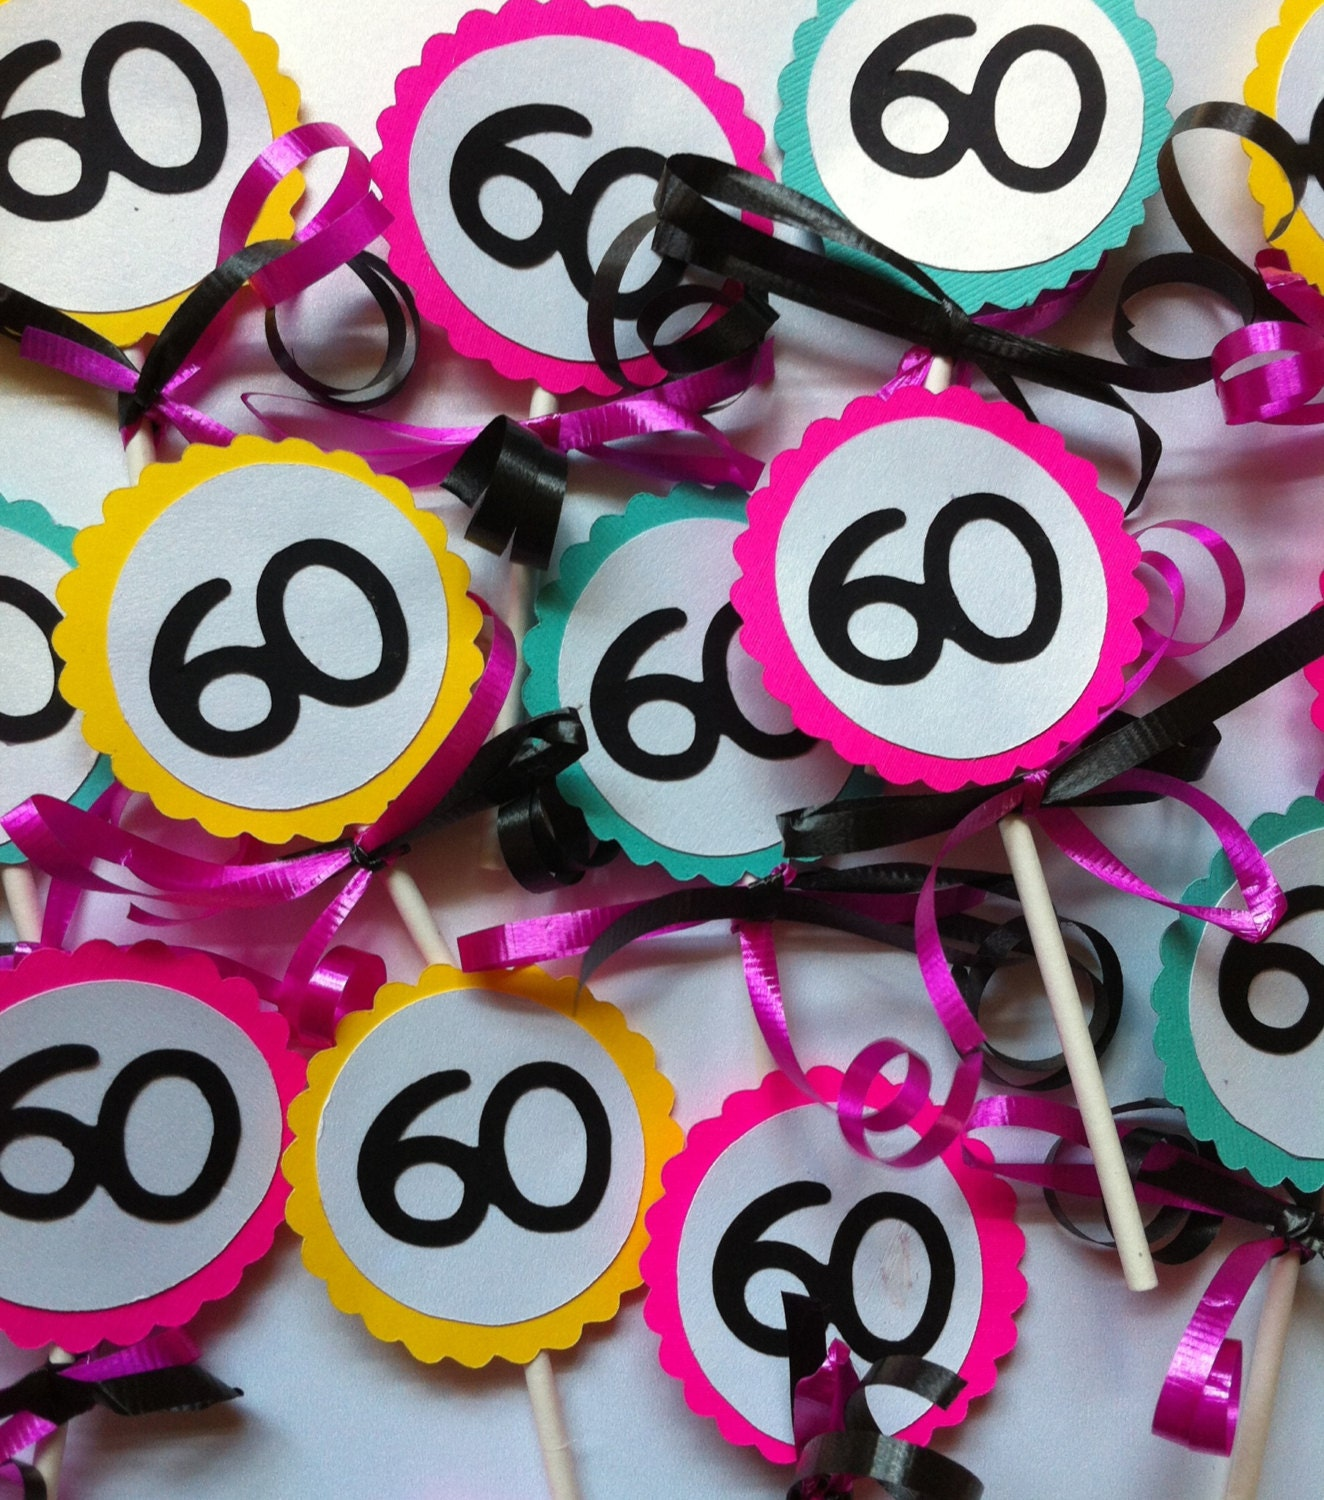 60th Birthday Decorations Cheap Image Inspiration of Cake and